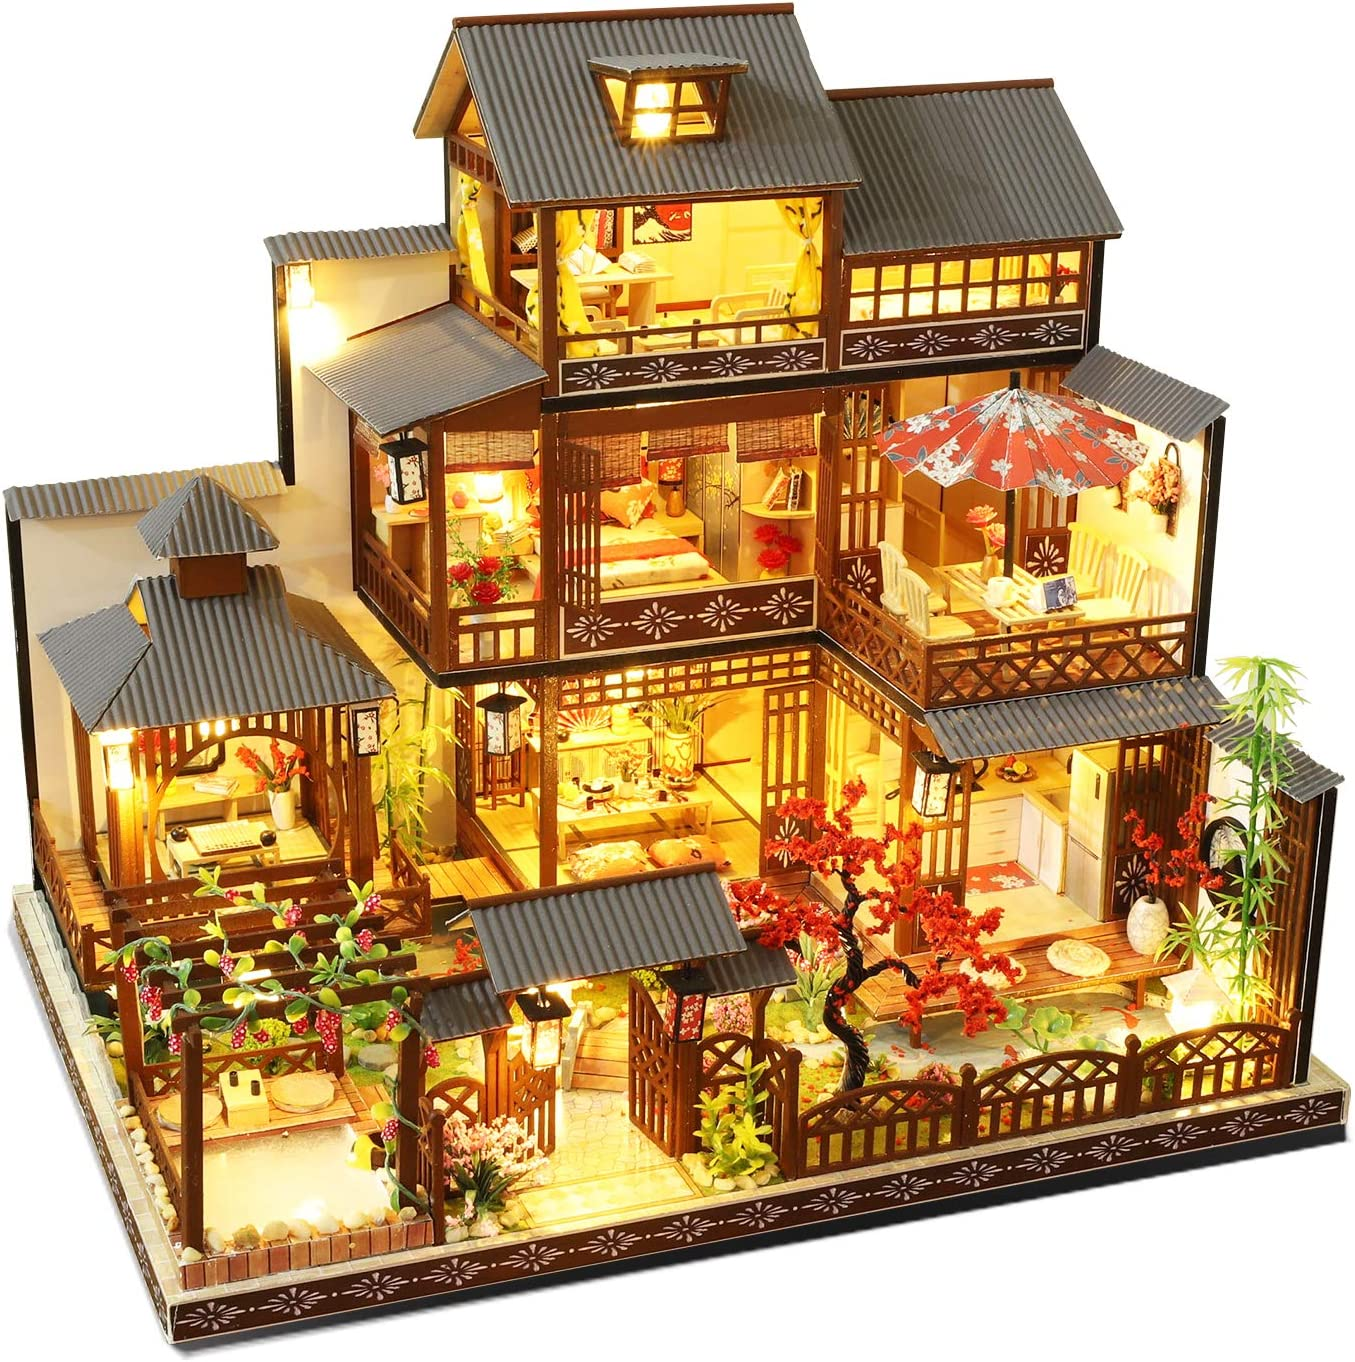 Spilay Dollhouse DIY Miniature Wooden Furniture Kit,Mini Handmade Big Japanese Courtyard Model Plus with LED & Music Box ,1:24 Scale Creative Doll House Toys for Adult Gift